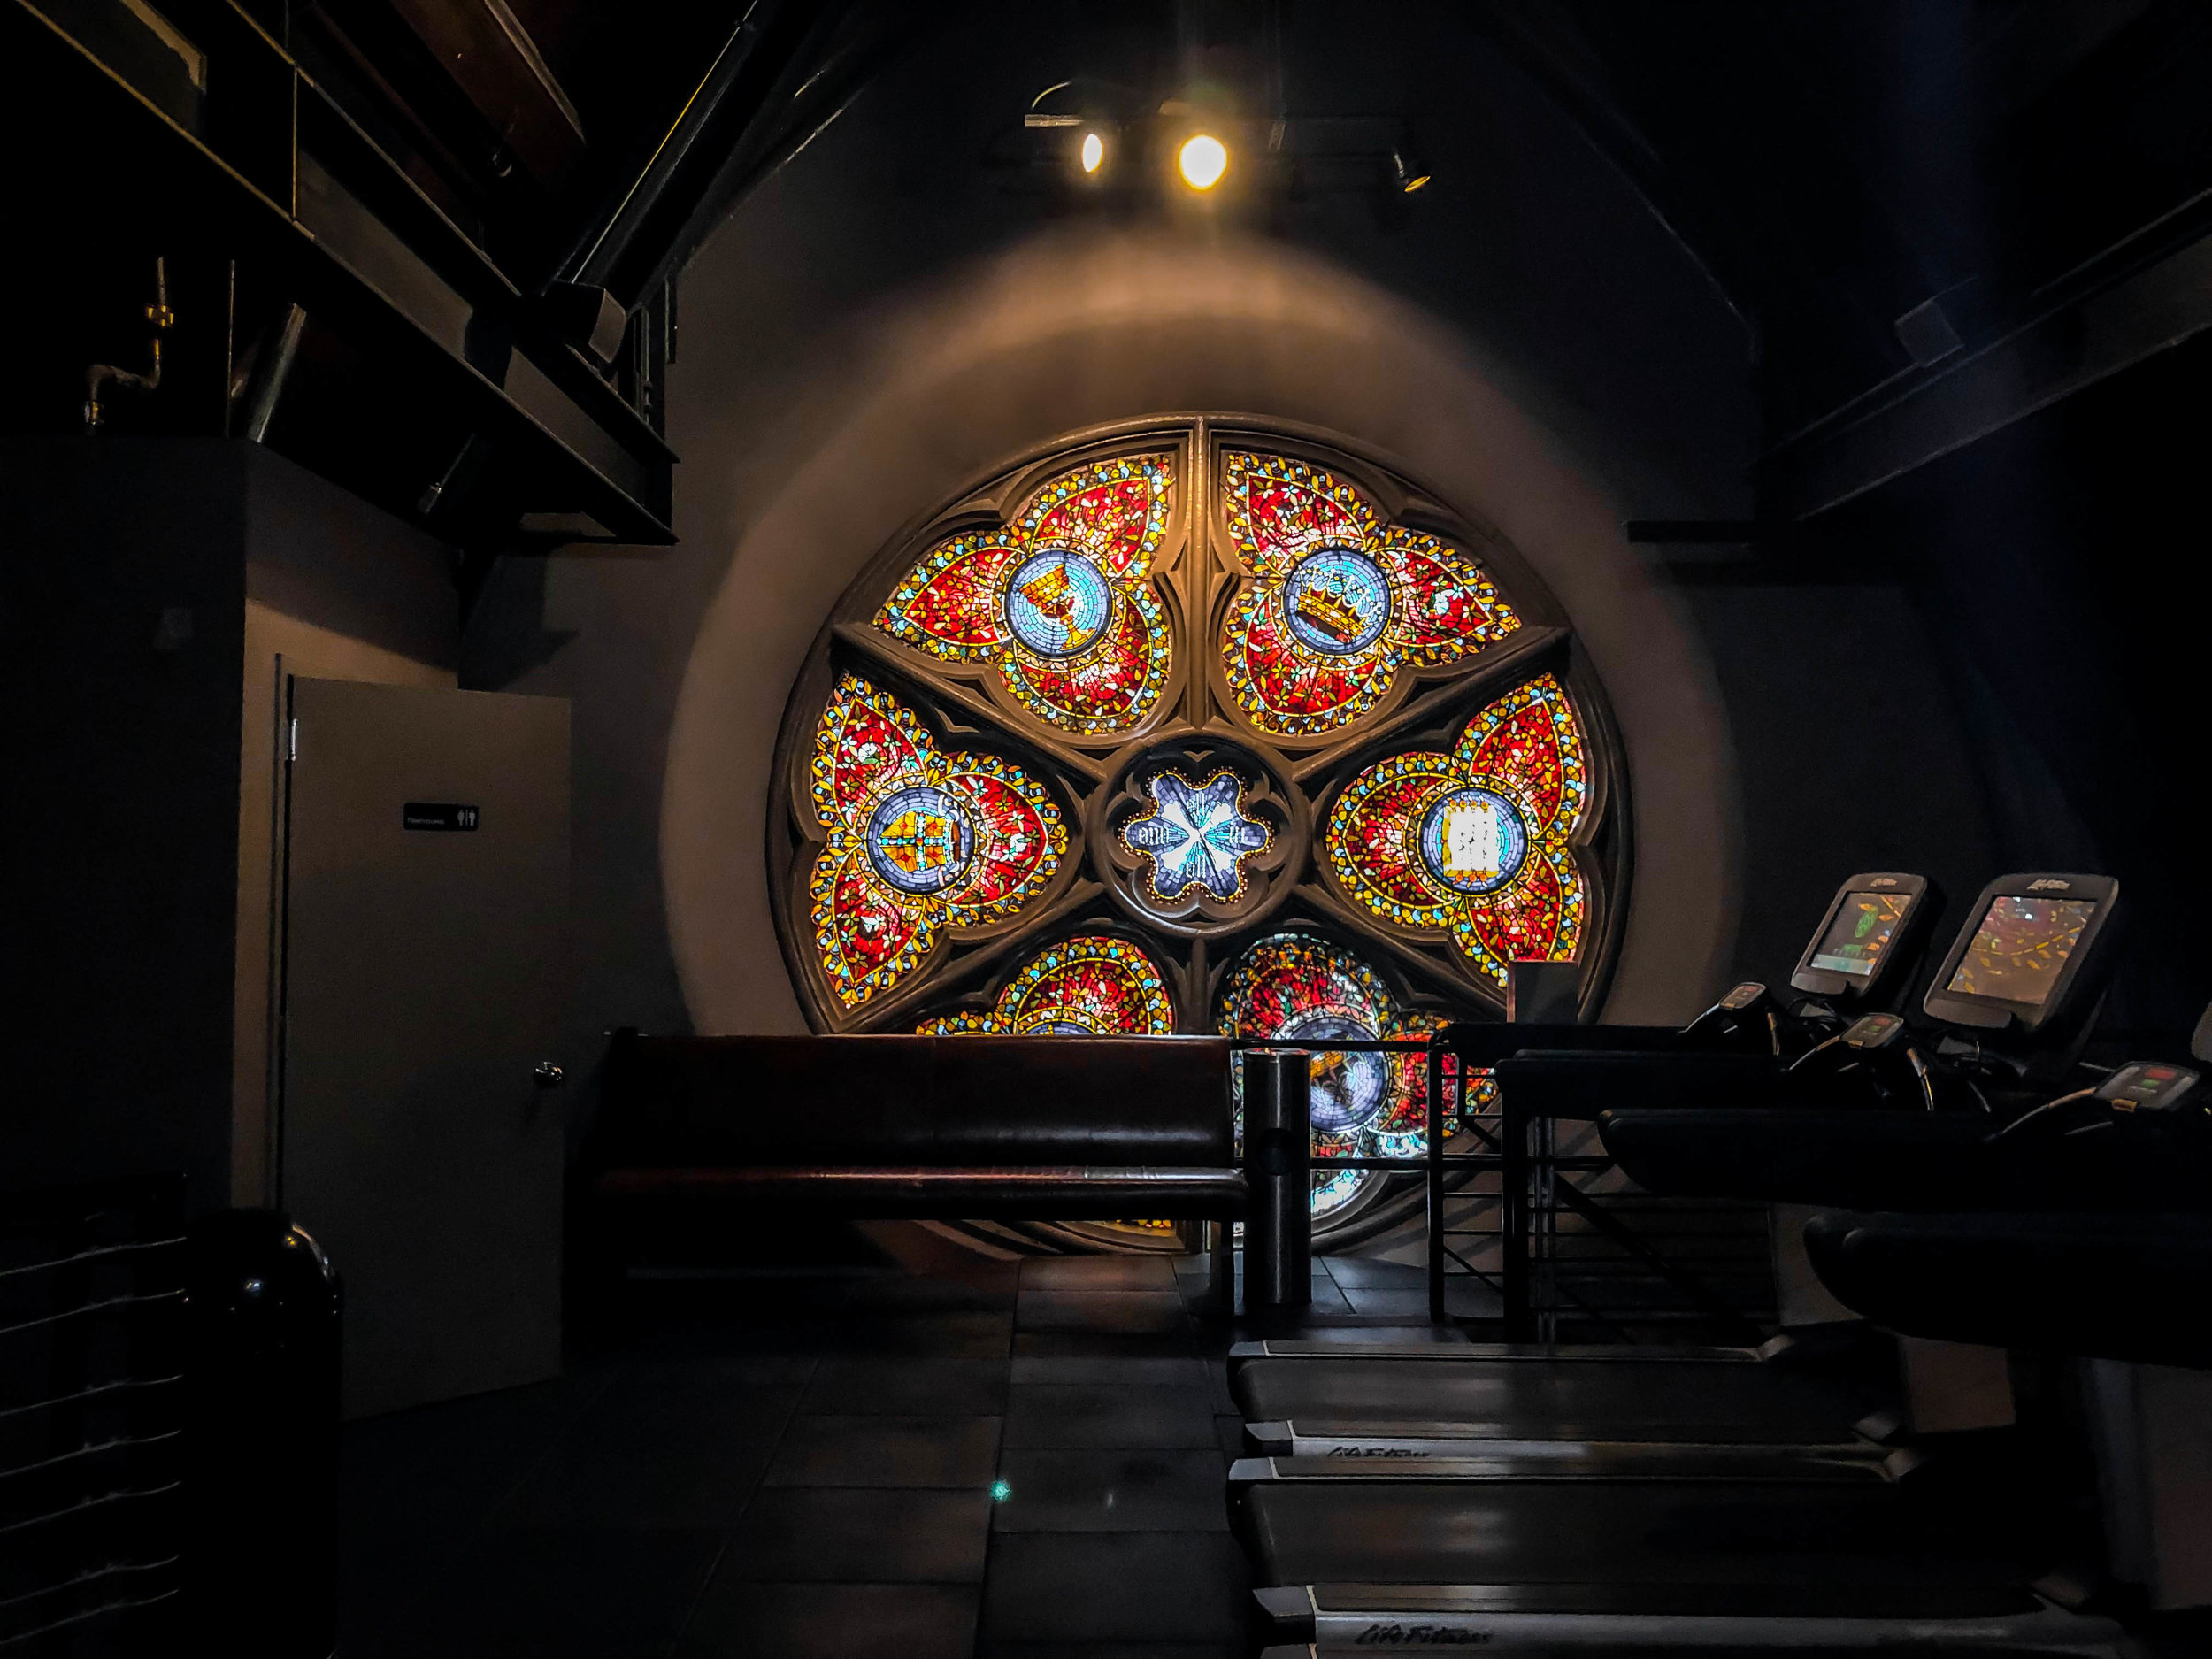 The treadmills are illuminated by the stained glass window left by the former Episcopal church in Chelsea, Manhattan on Feb. 10, 2019. || Photo by Bernadette Berdychowski.